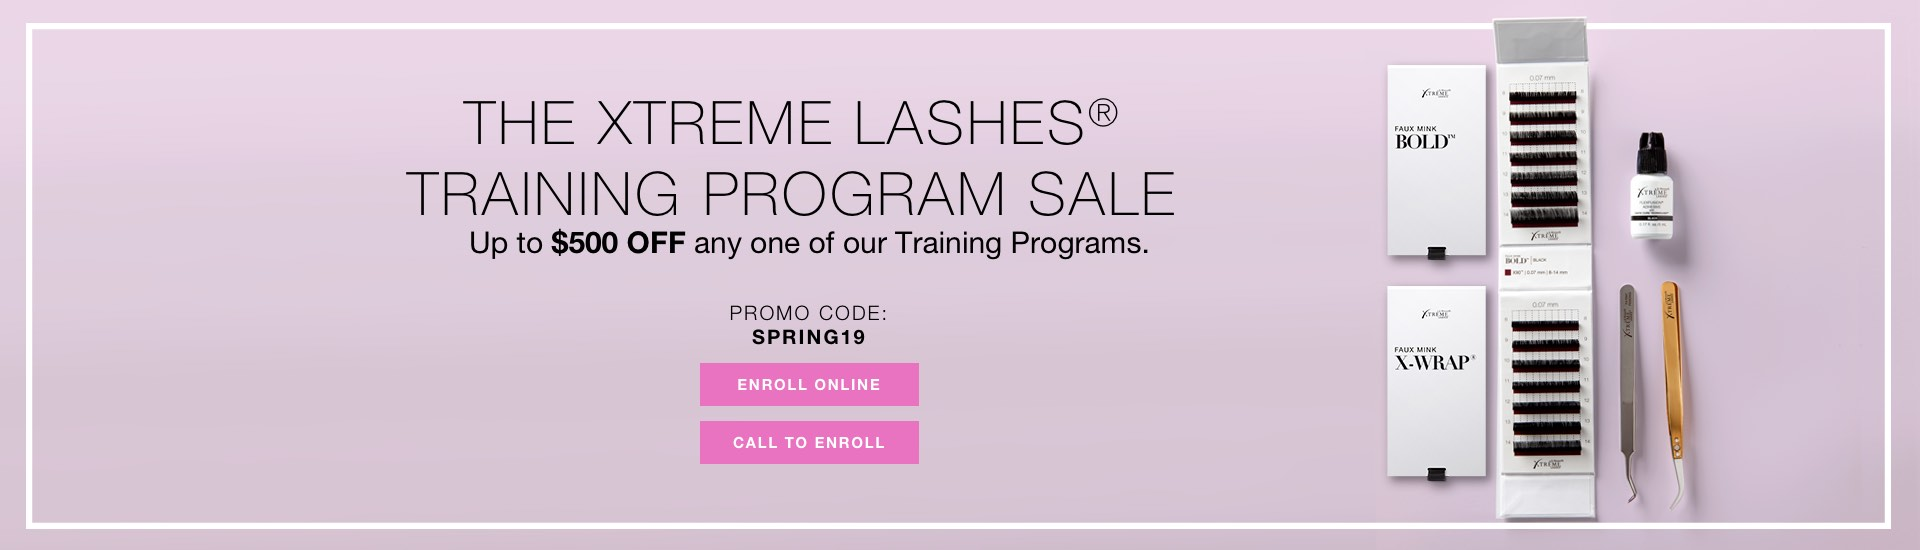 Training Program Sale. Up to $500 OFF on any one of our Training Programs. Promo code: SPRING19